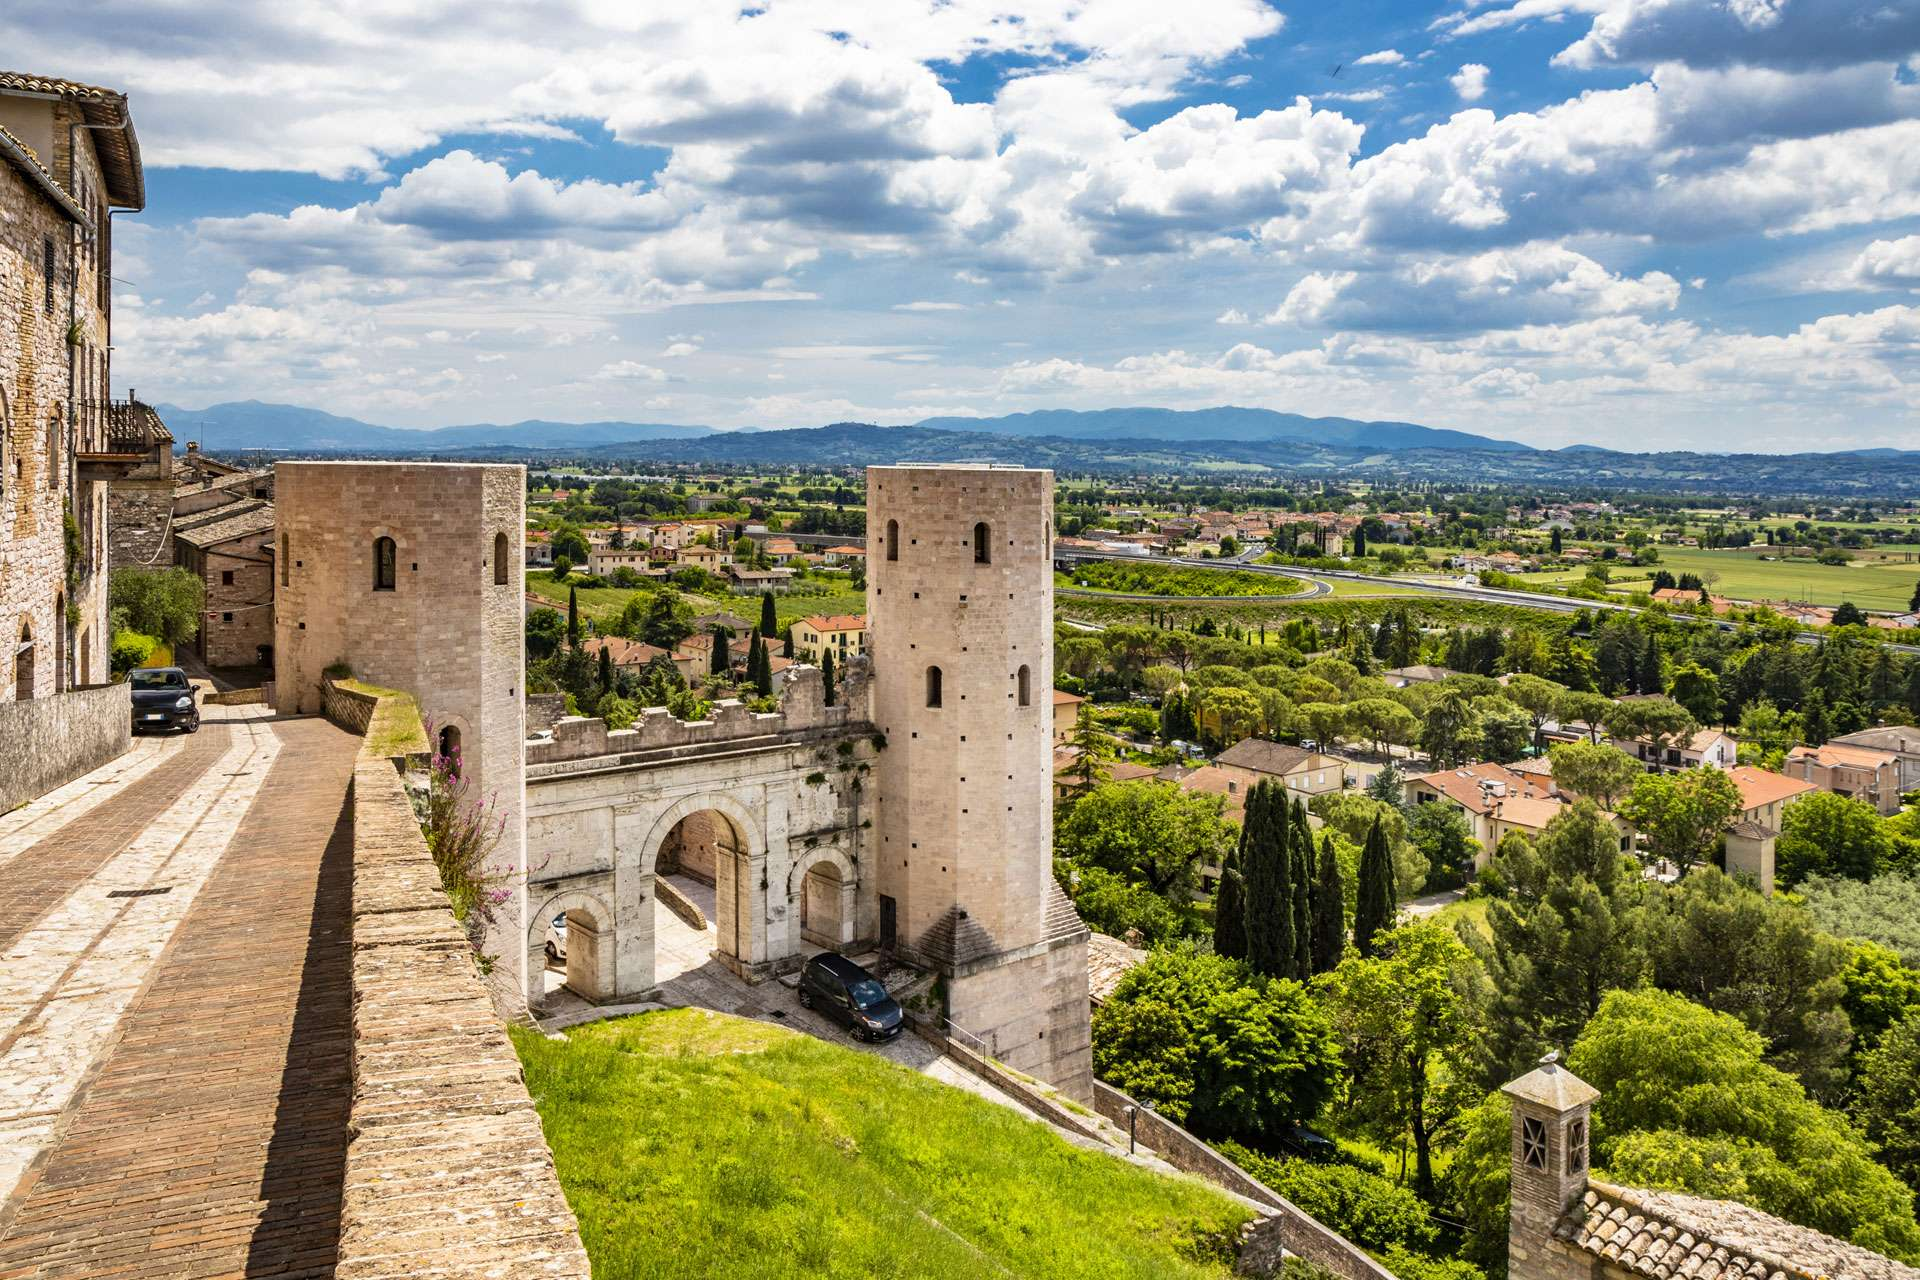 When is the Best Time to Visit Umbria